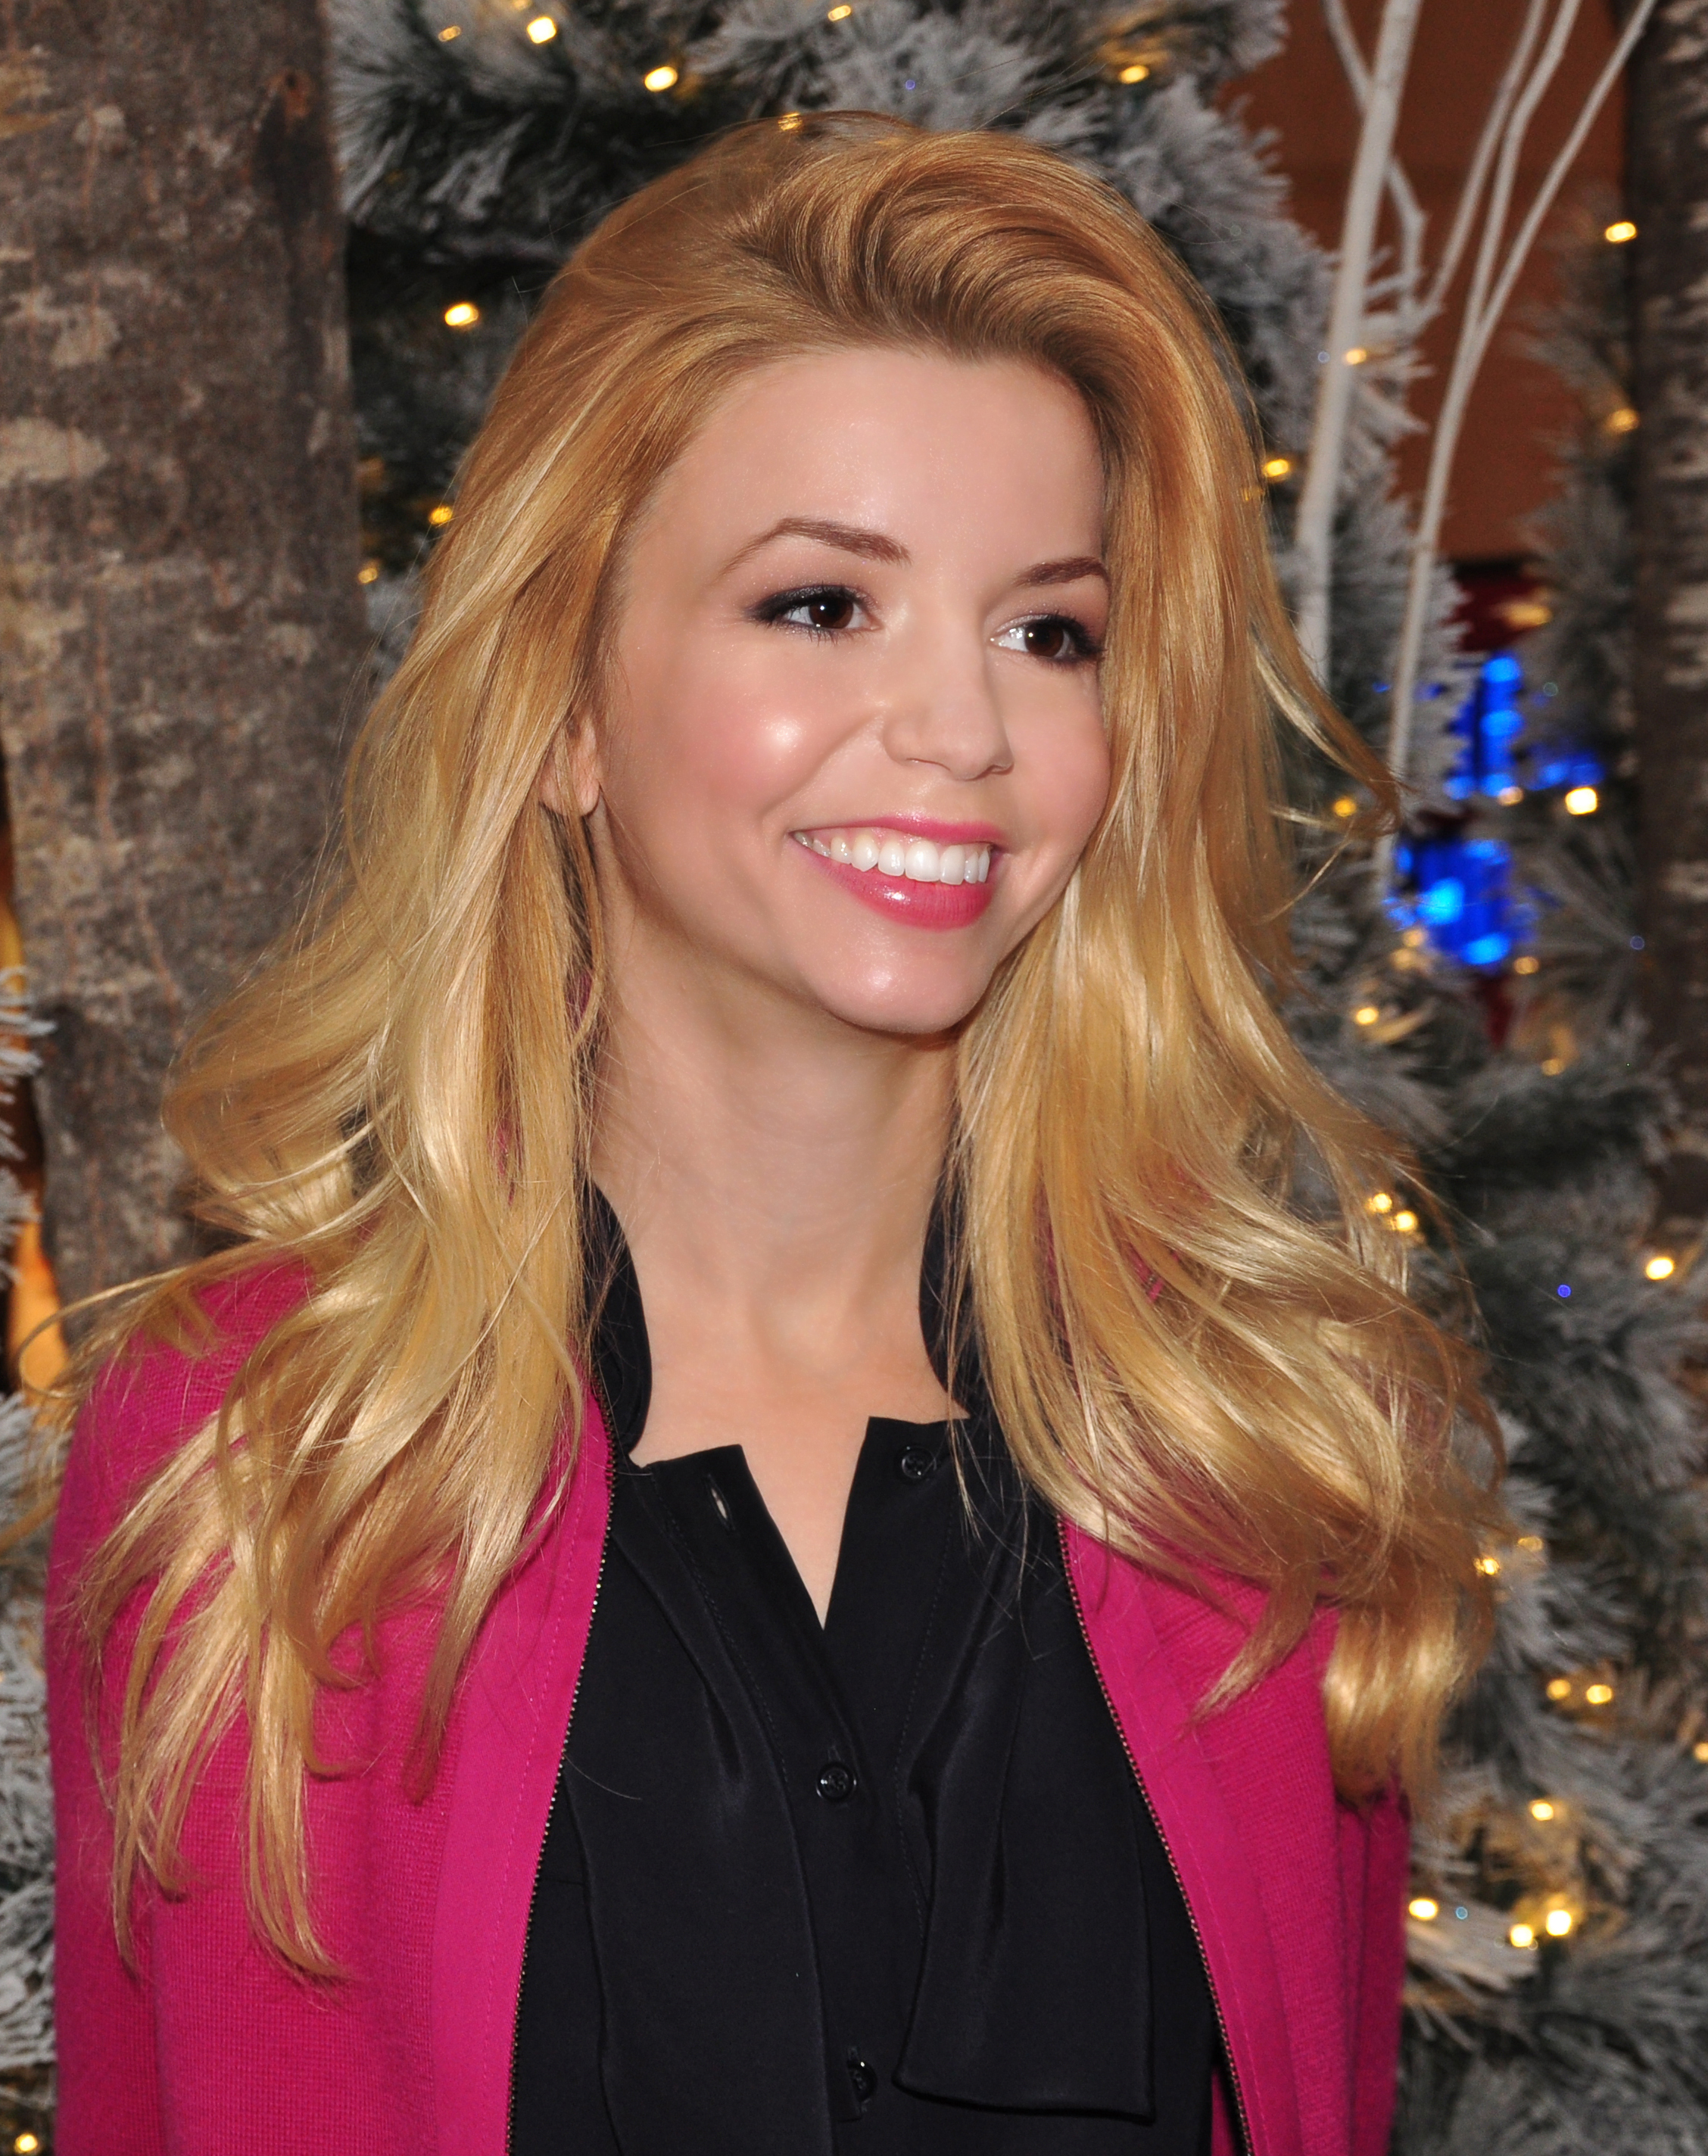 Masiela lusha is naked all the time consider